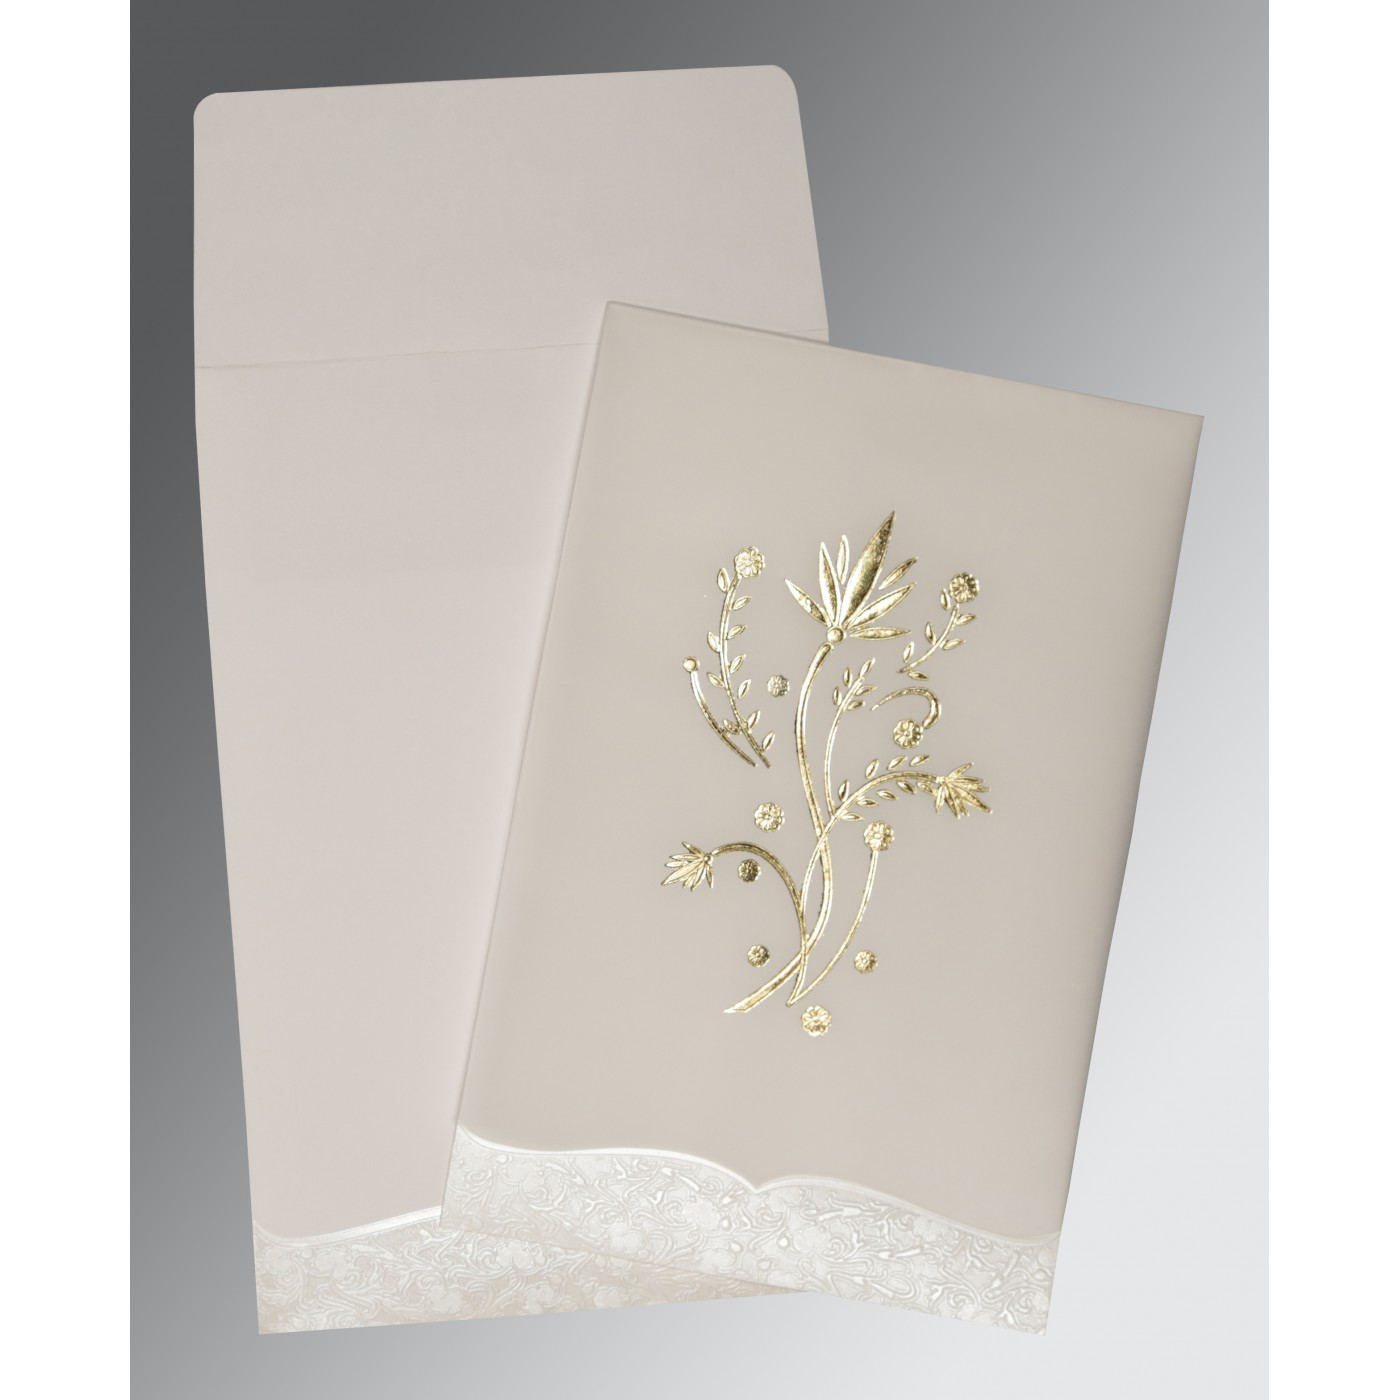 OFF-WHITE FLORAL THEMED - FOIL STAMPED WEDDING CARD : AS-1495 - A2zWeddingCards